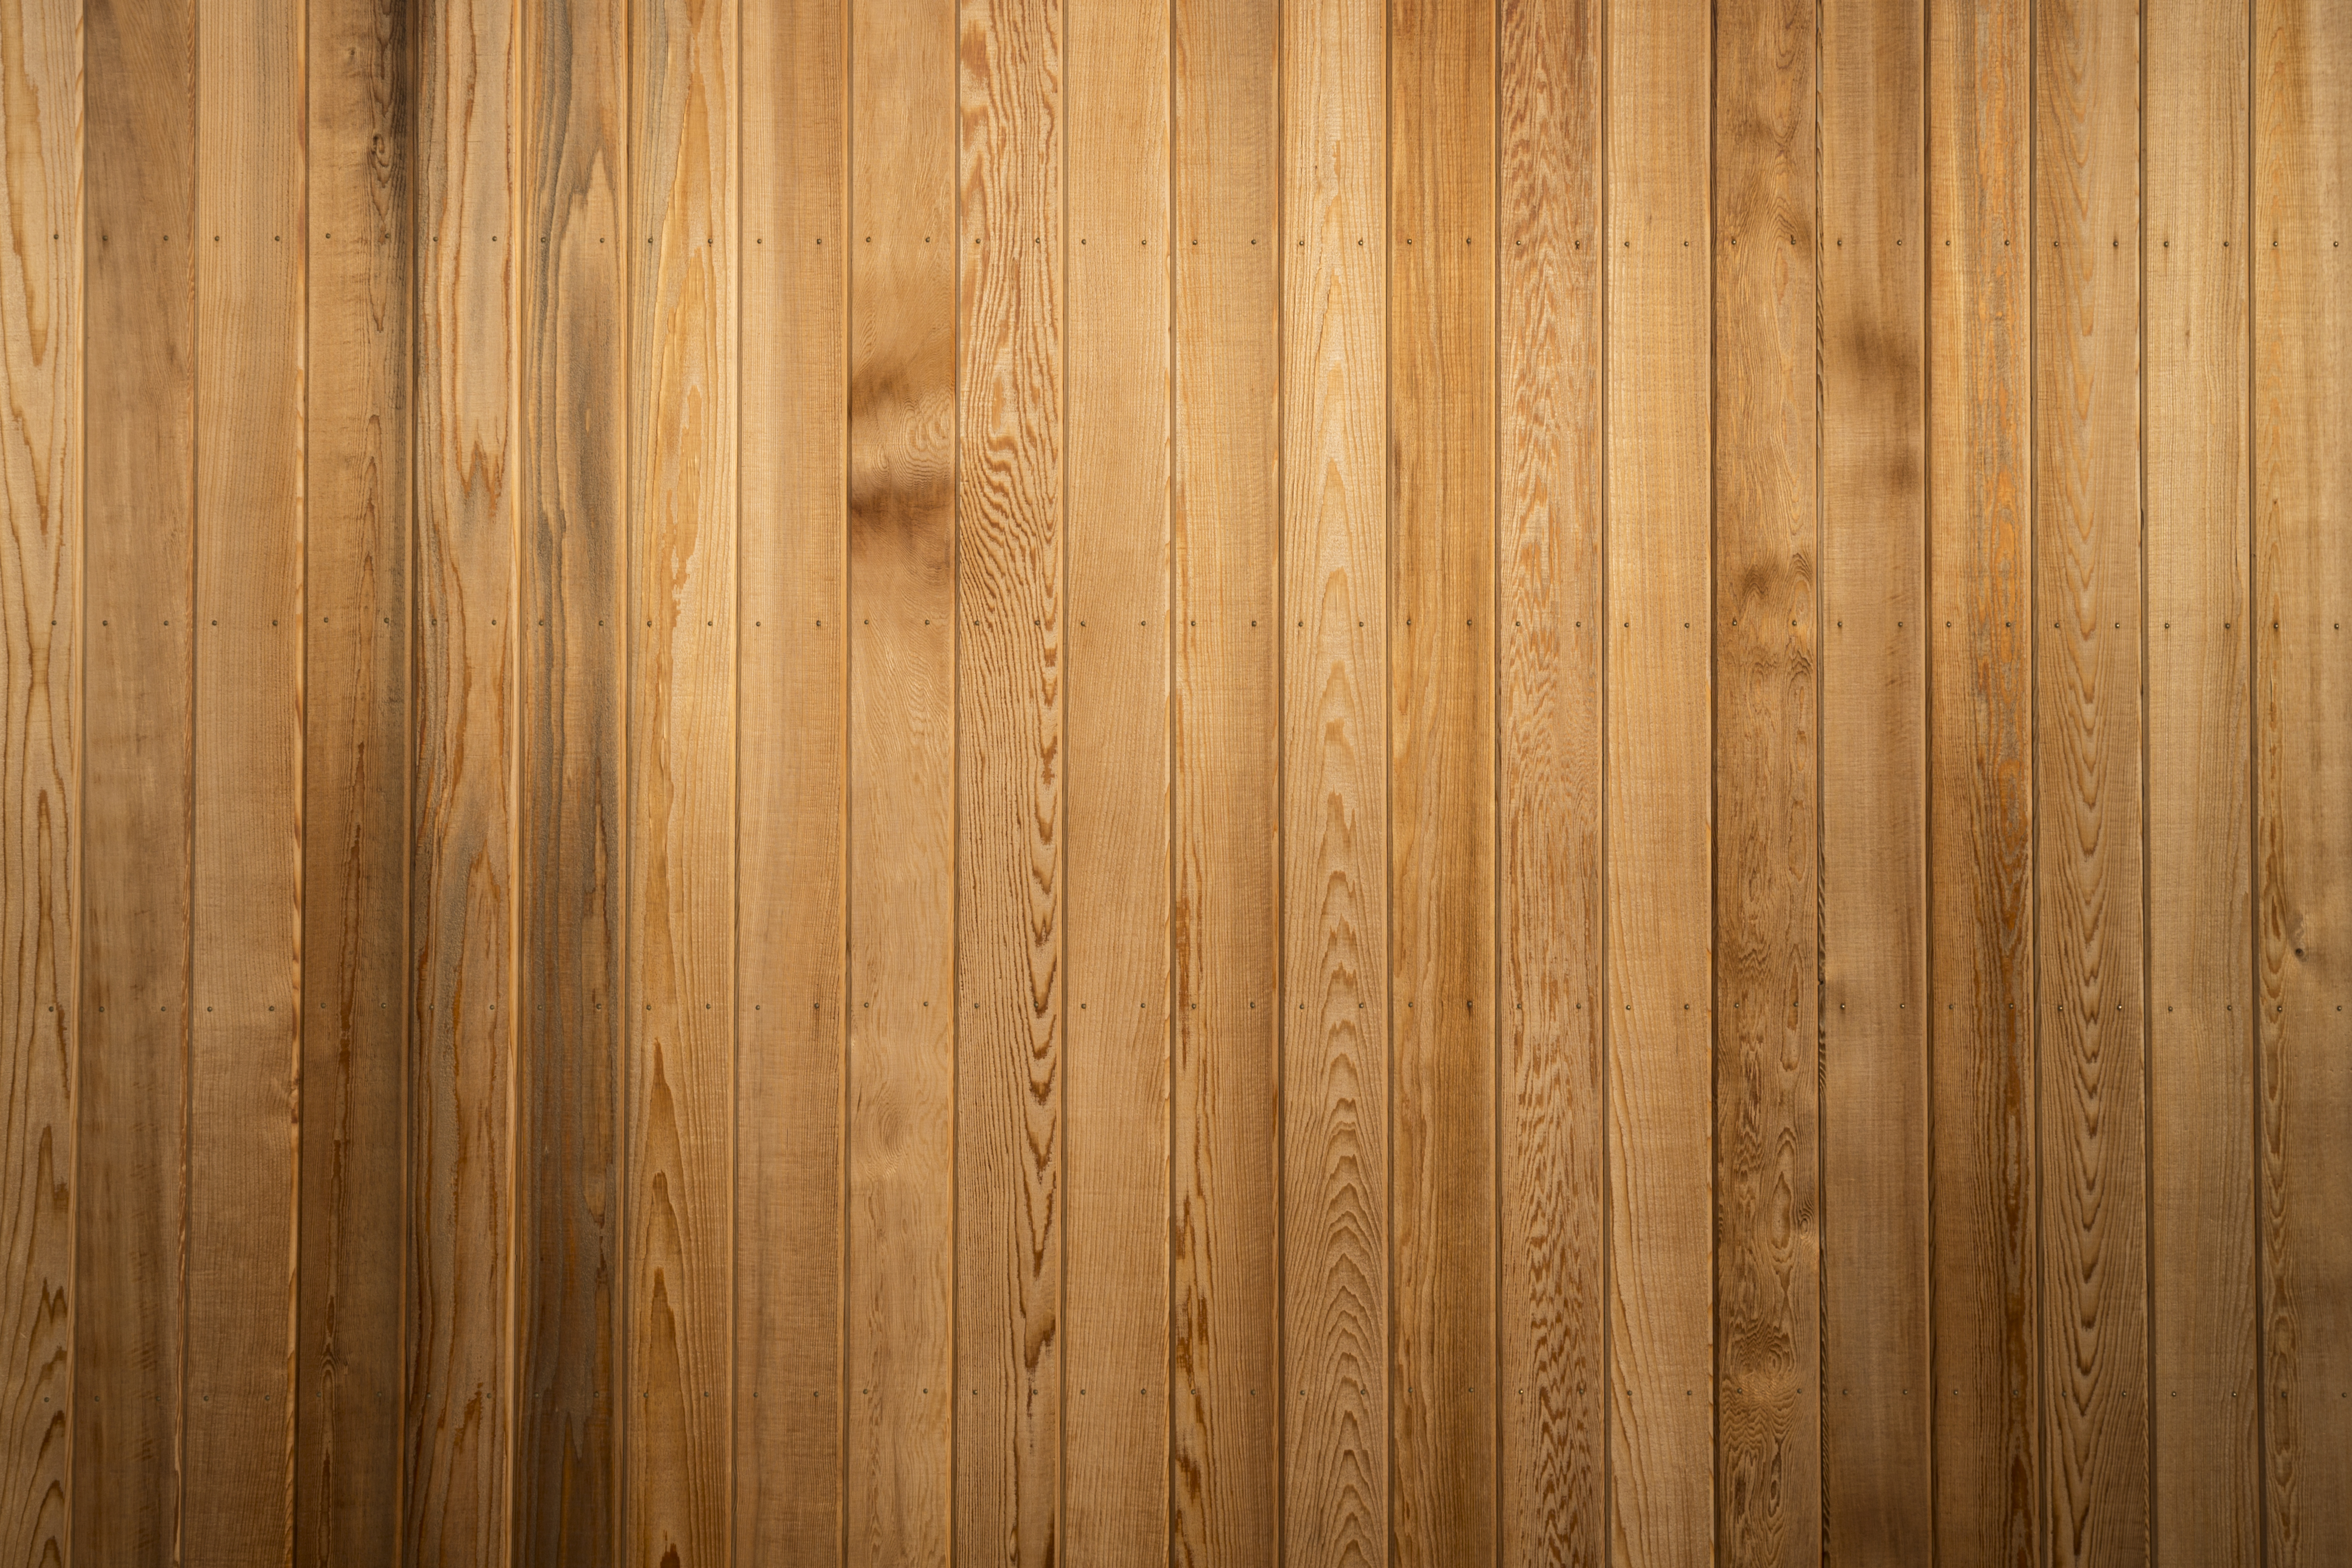 Big Brown Wood Plank Wall Texture Background Bredehoeft